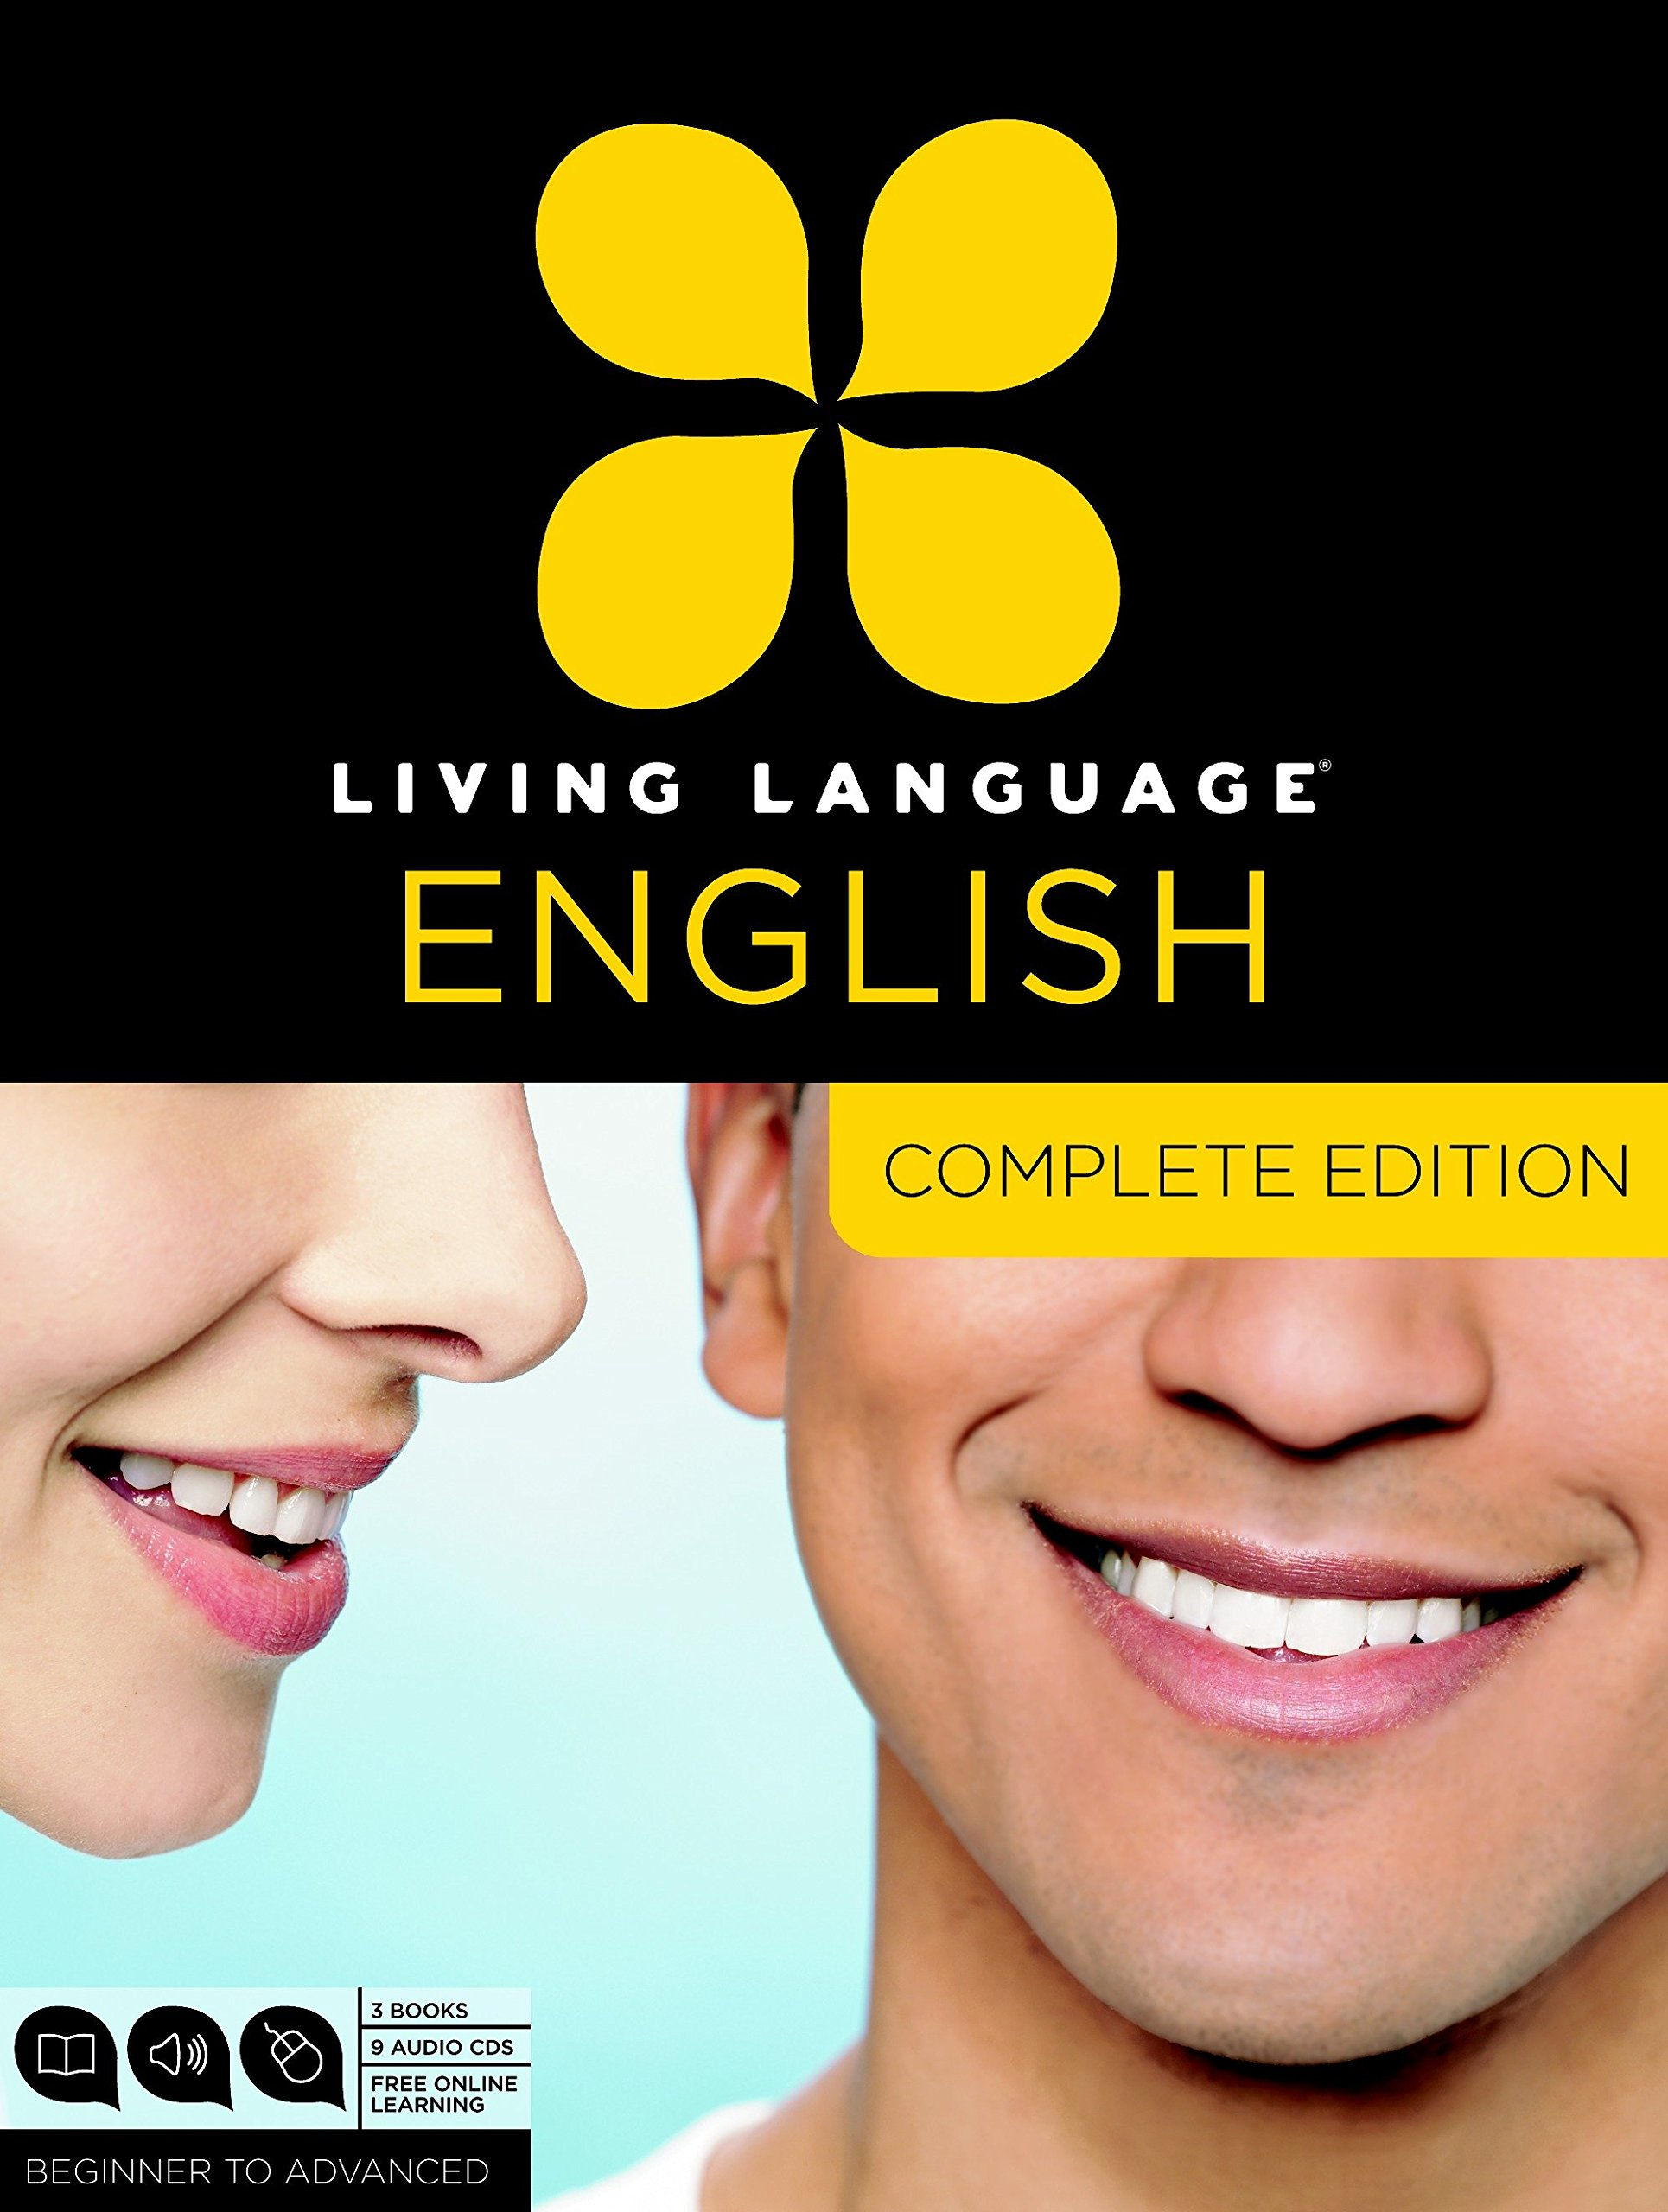 Living Language English, Complete Edition (ESL/ELL): Beginner through advanced course, including 3 coursebooks, 9 audio CDs, and free online learning by Living Language